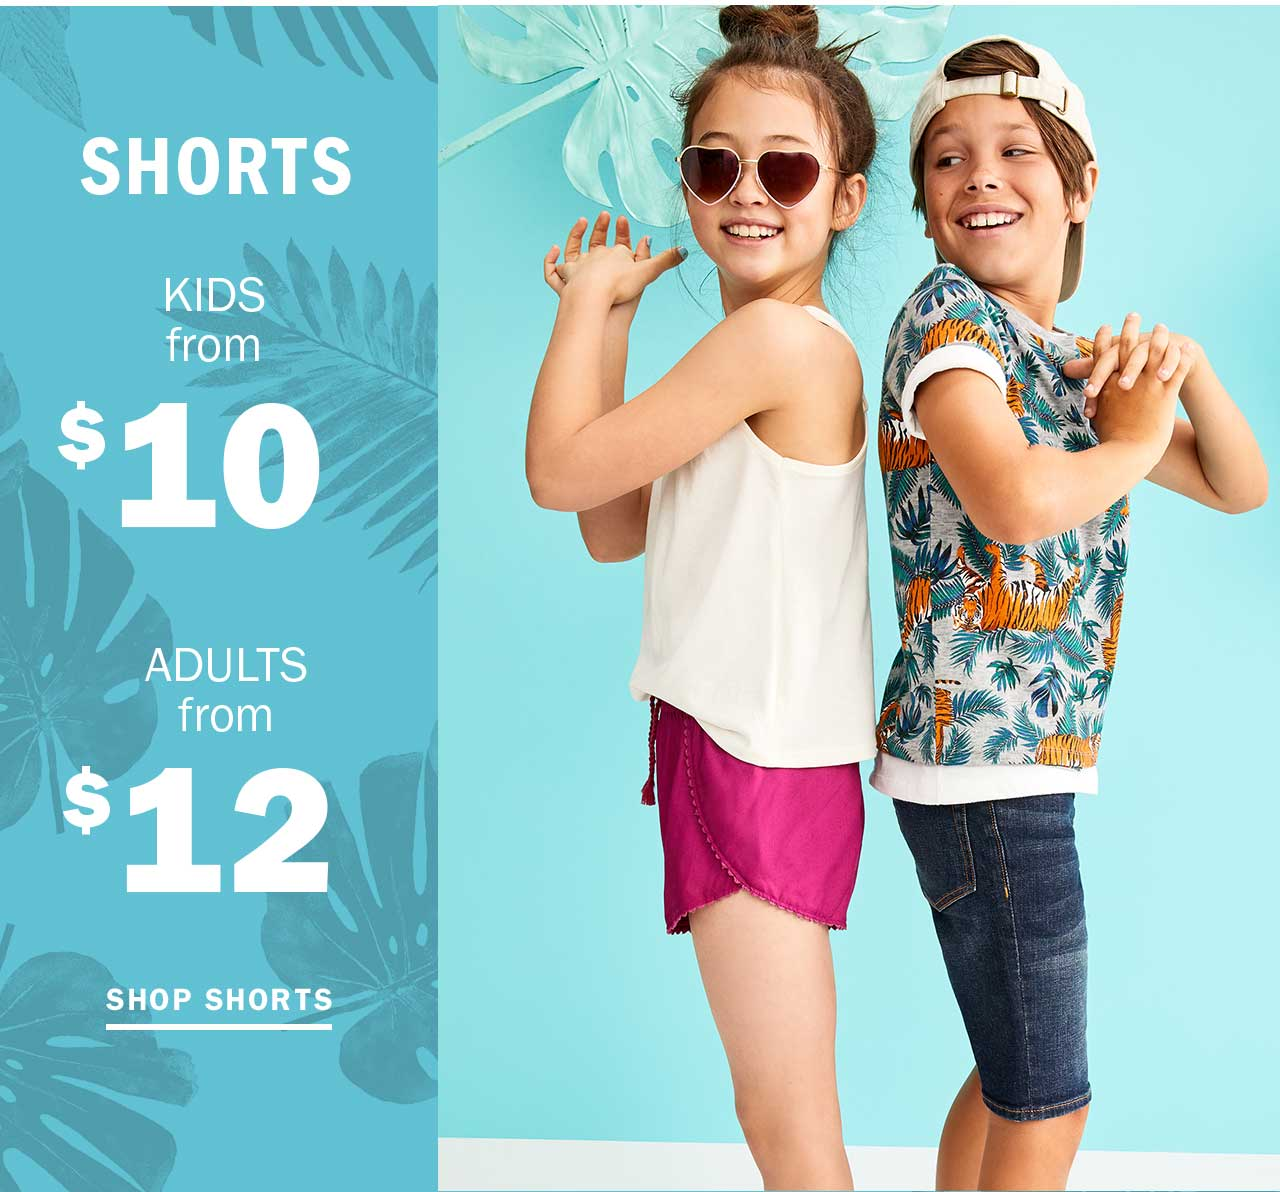 SHORTS KIDS from $10 | ADULTS from $12 | SHOP SHORTS